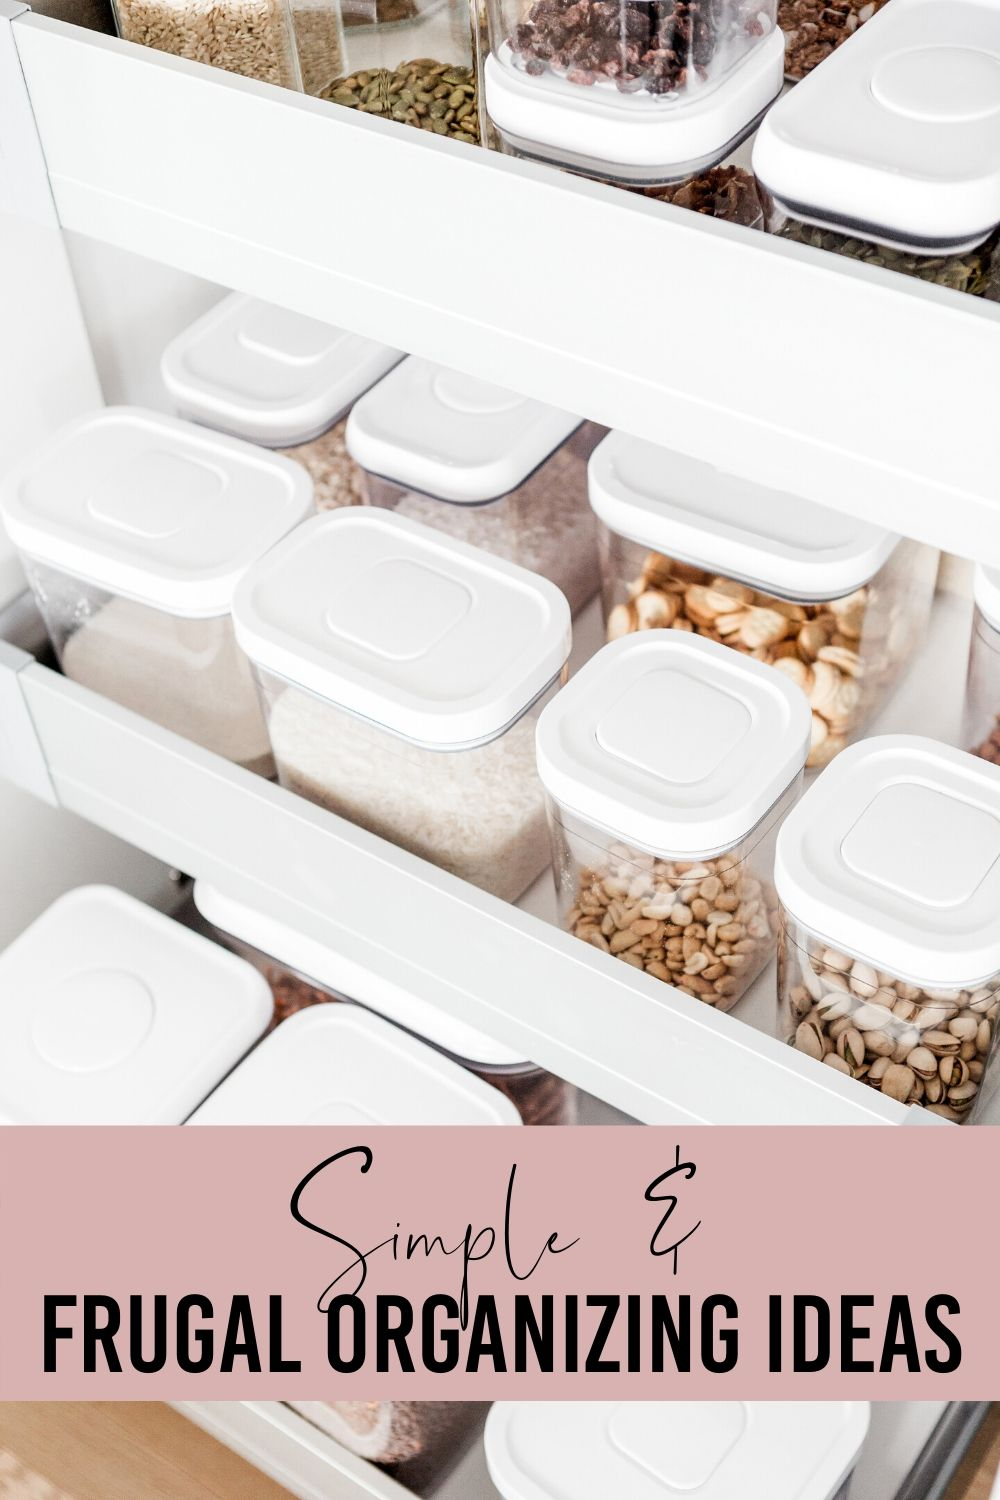 Learn how to save money while organizing your home. These money saving tips will help you with your organizing. #budget #frugal #moneysavingtips #budgetideas #organizingideas #organizedhome via @homebyjenn